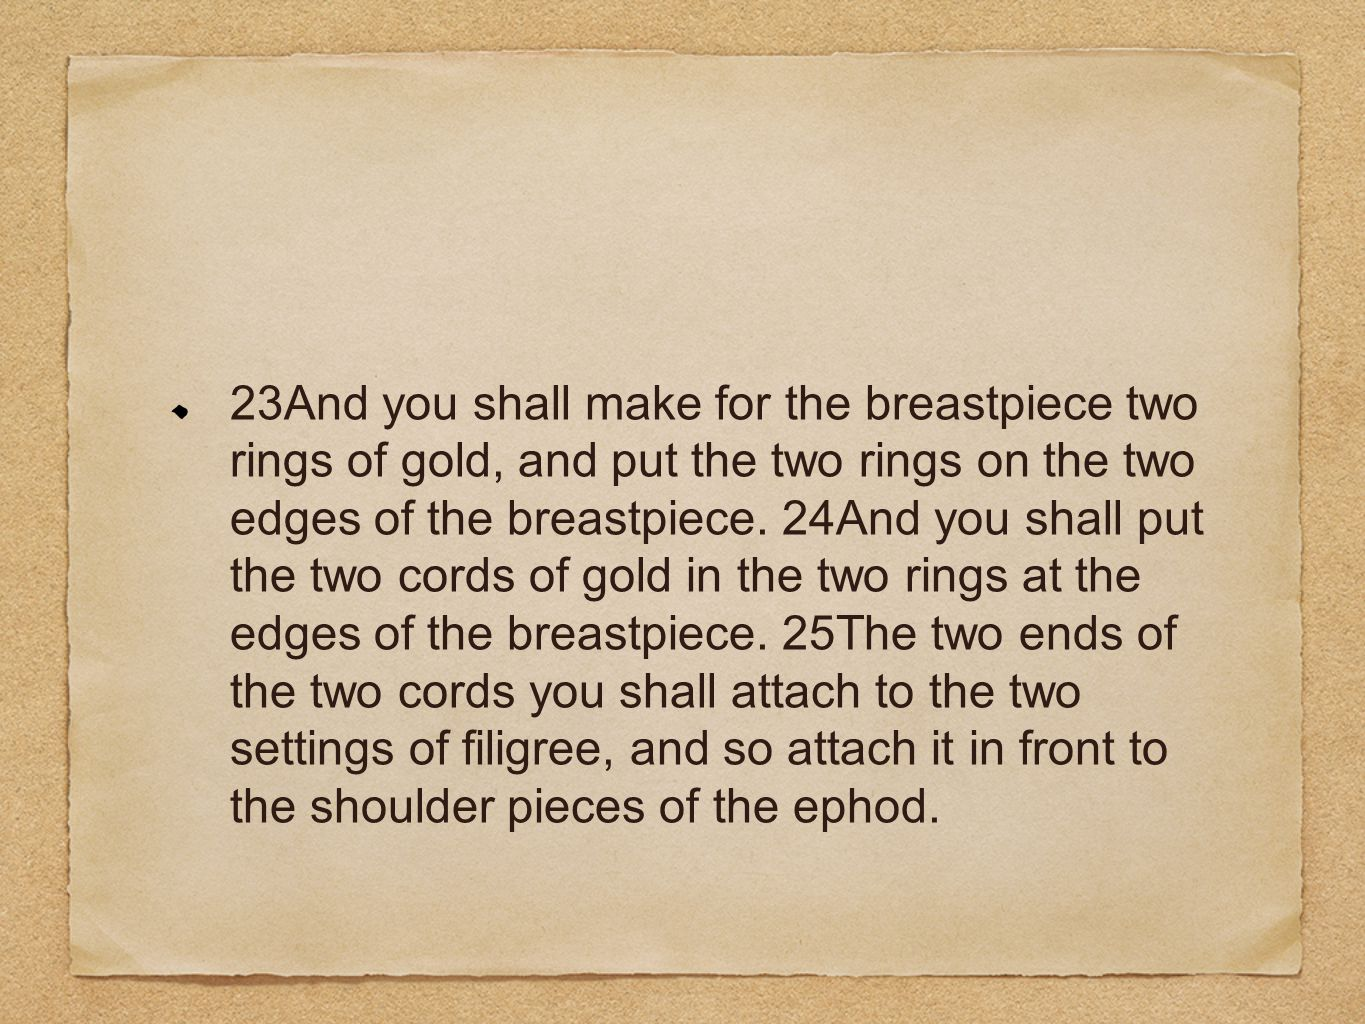 23And you shall make for the breastpiece two rings of gold, and put the two rings on the two edges of the breastpiece.